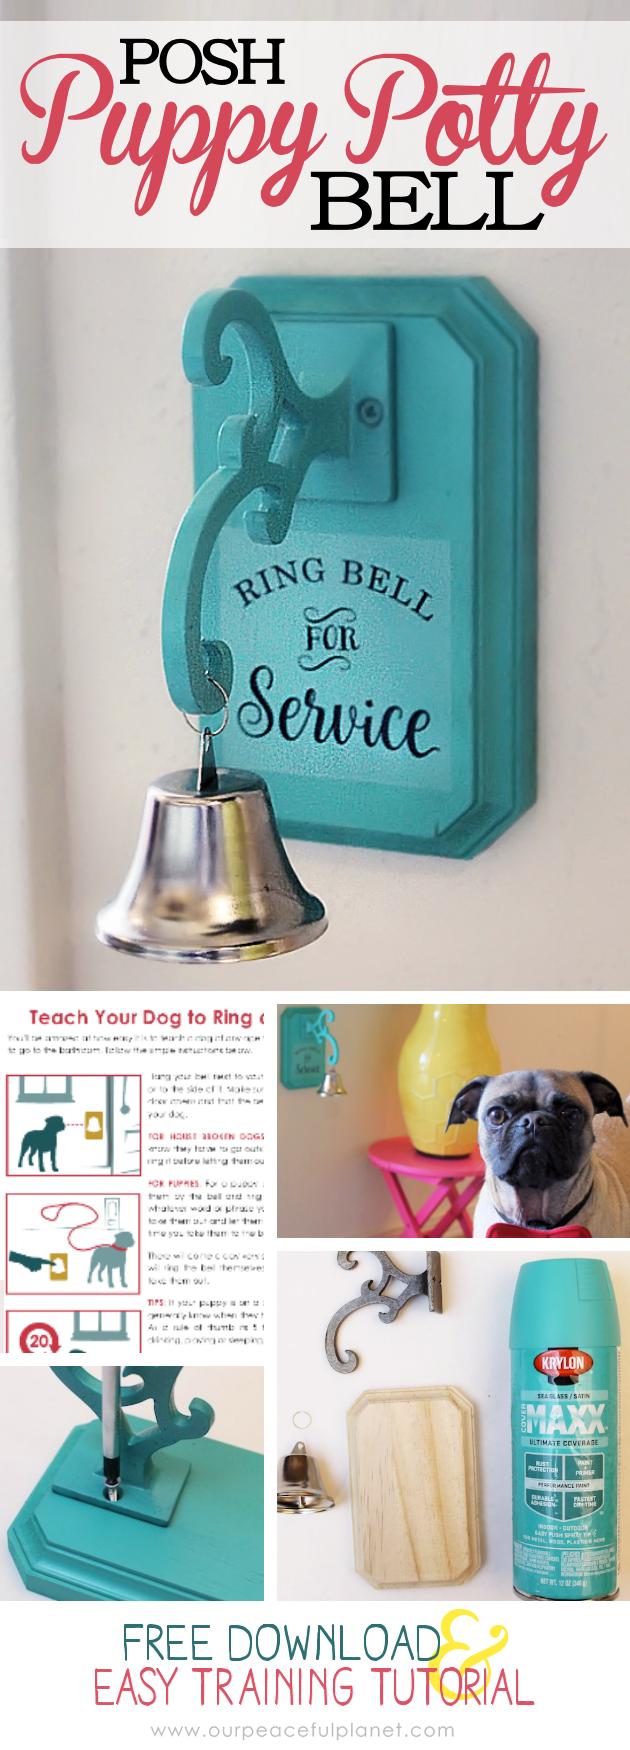 How To Teach Your Dog To Ring A Service Bell